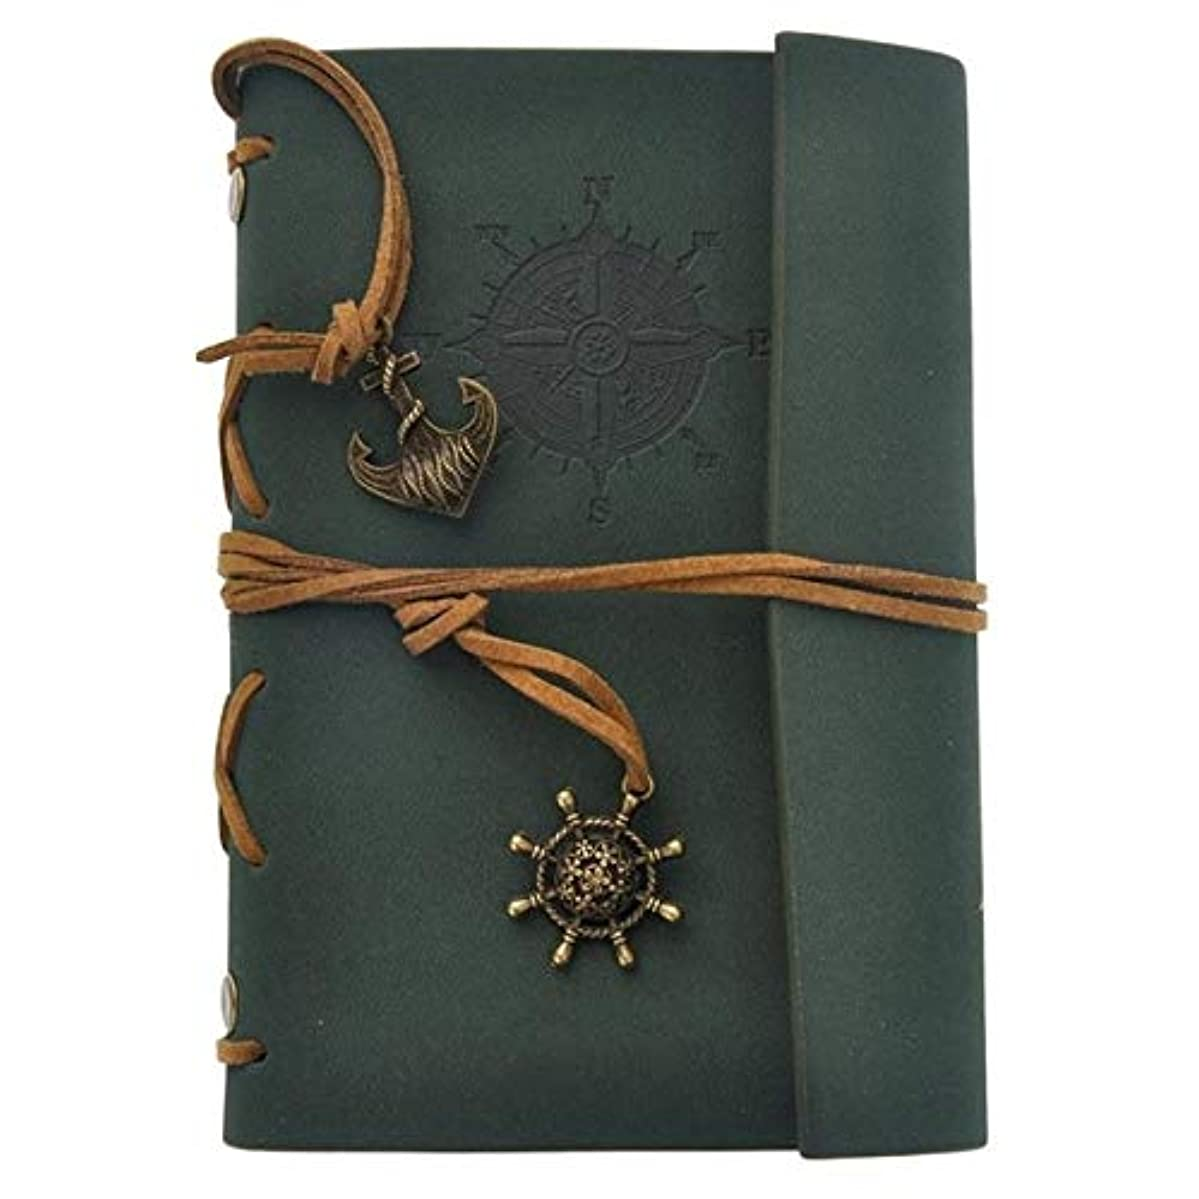 Retro Vintage Pirate PU Cover Loose-Leaf String Bound Blank Notebook Notepad Travel Journal Diary Jotter Gift - Dark Green